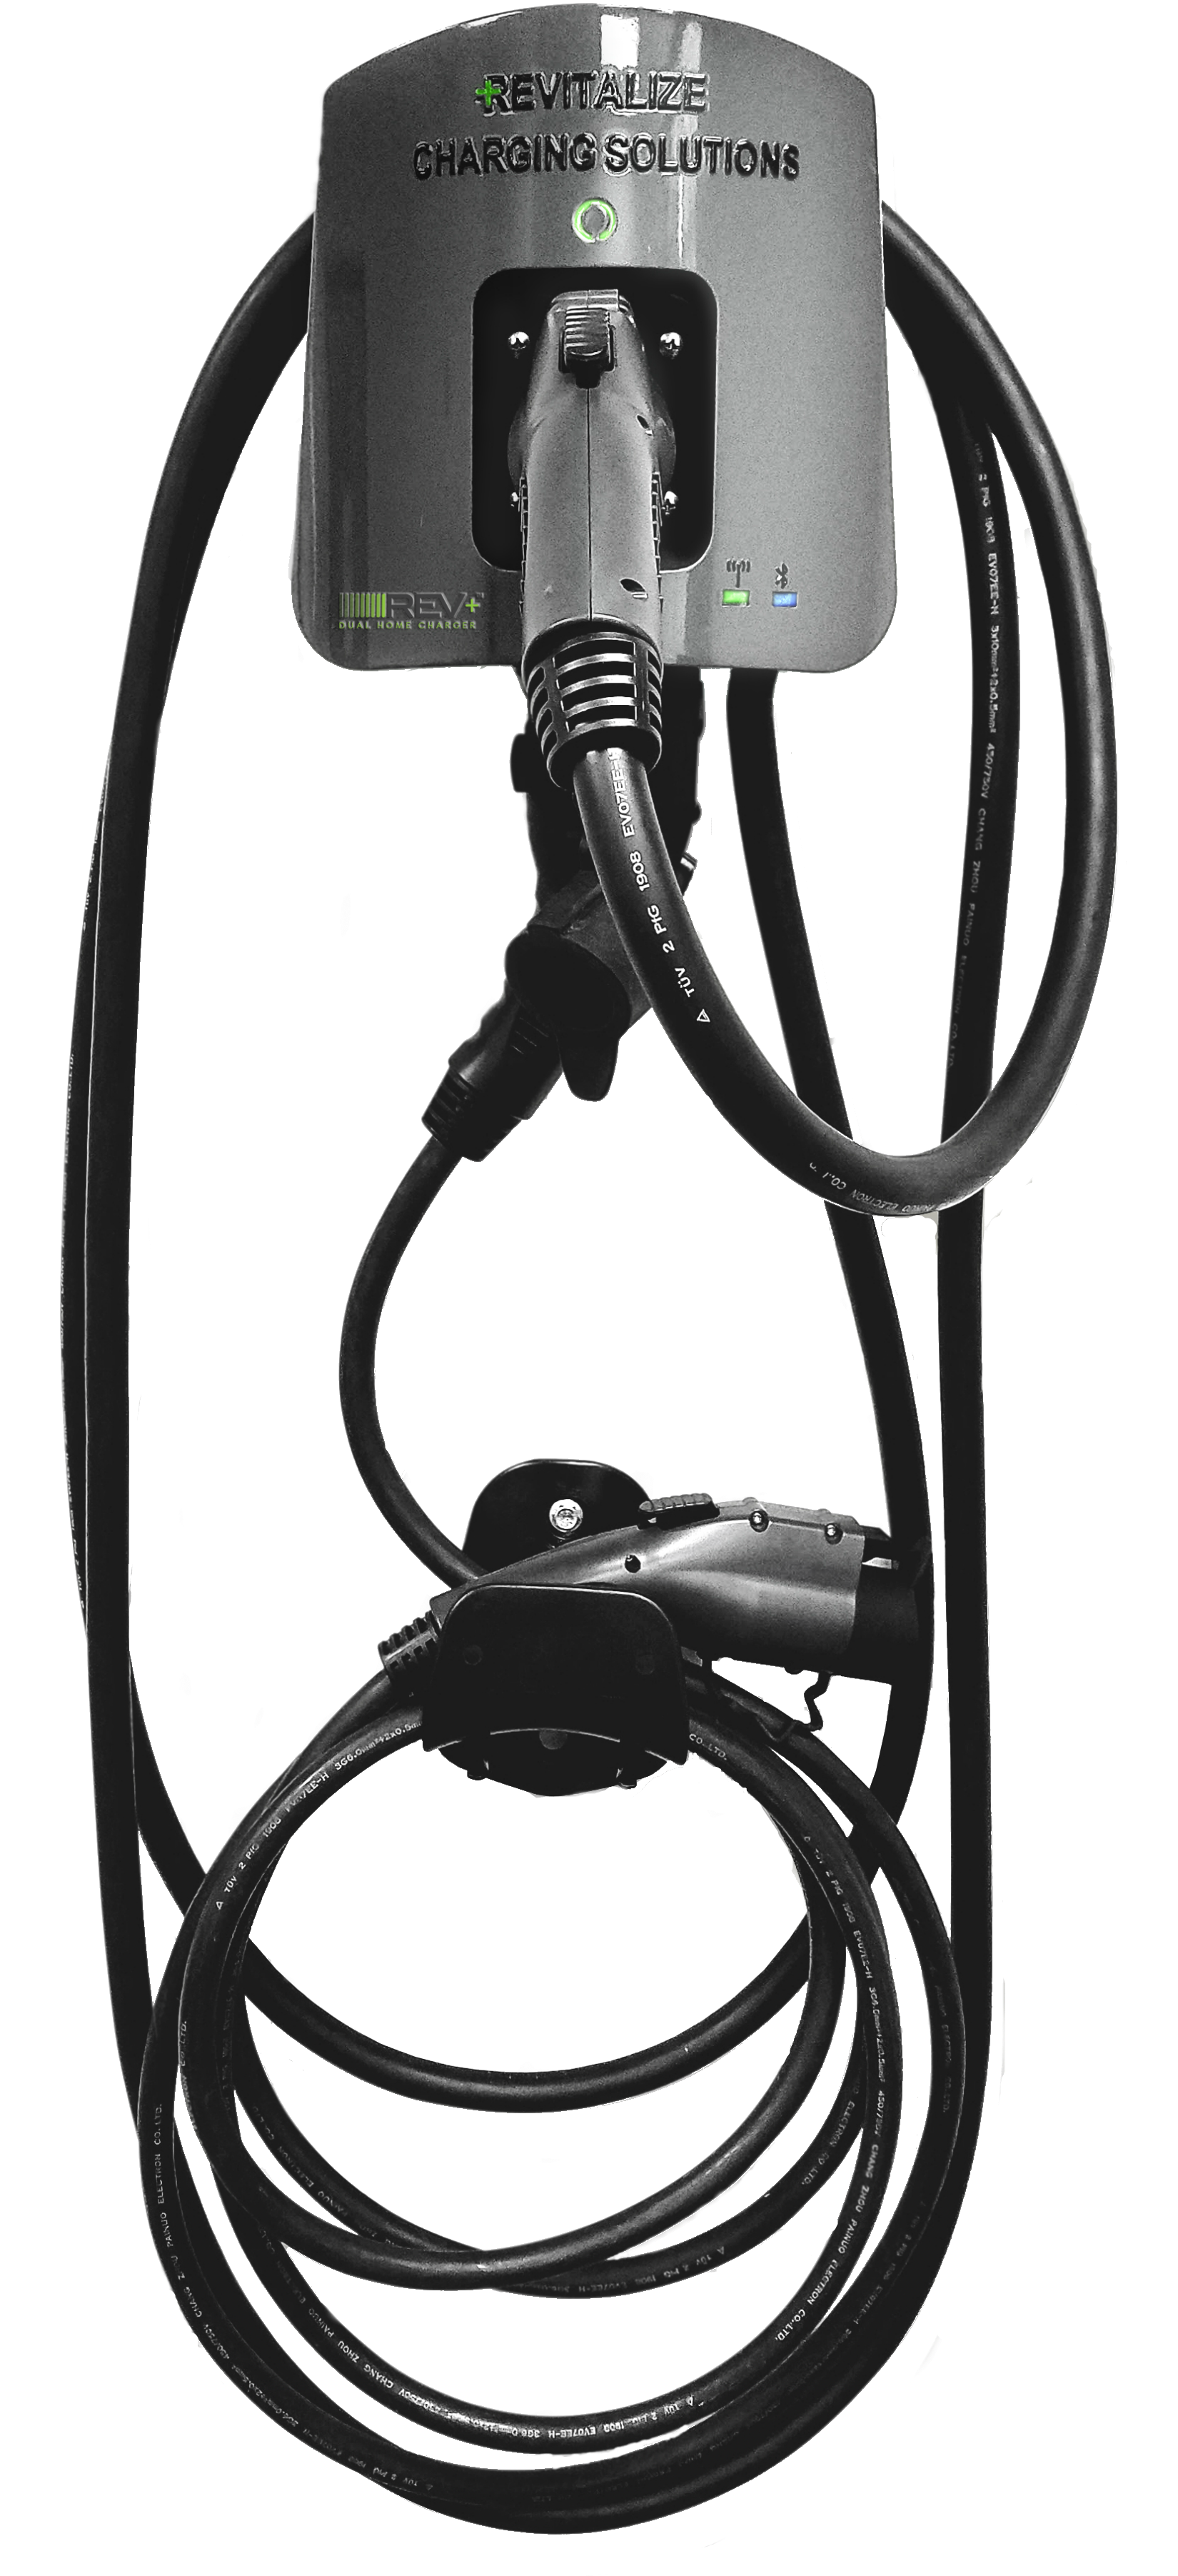 TechFW client approved to sell home electric vehicle charger